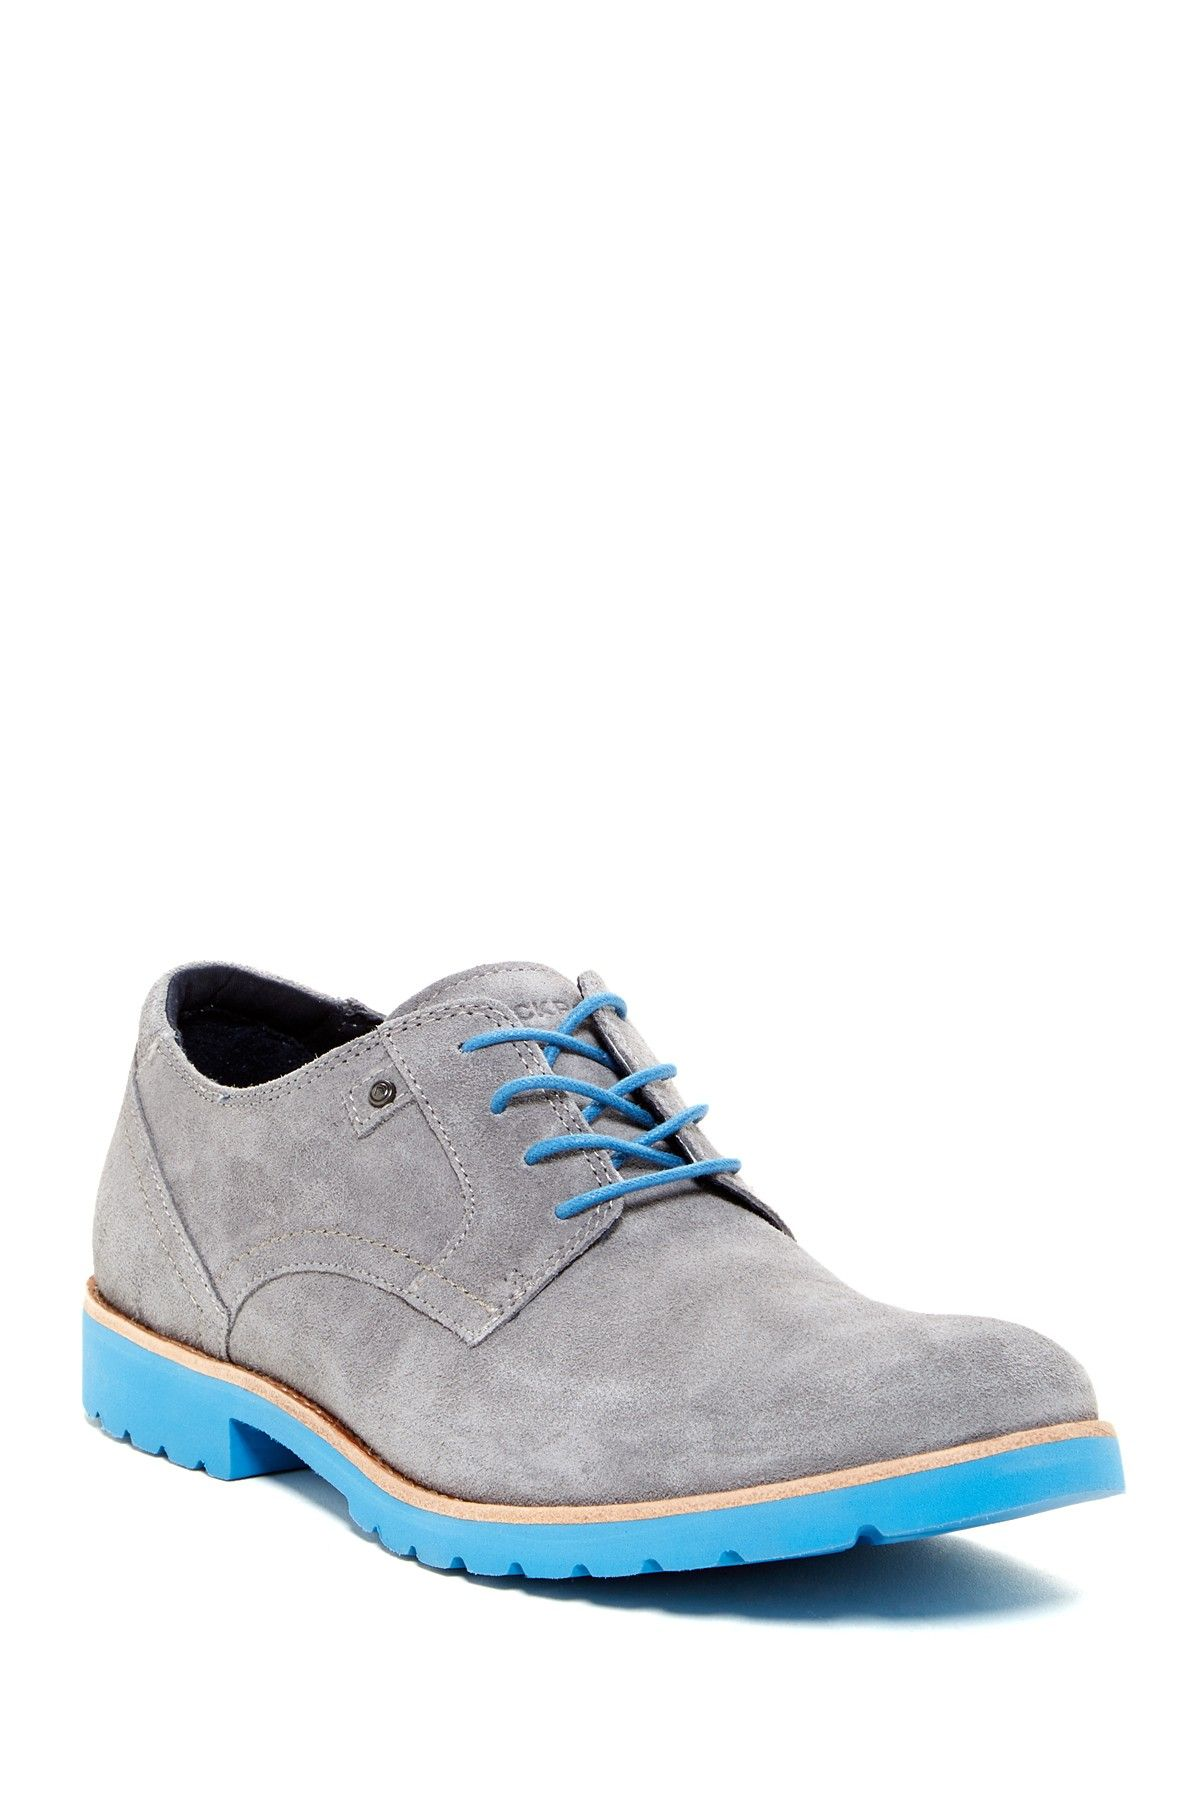 Blue Sole Man Shoes Herenmode